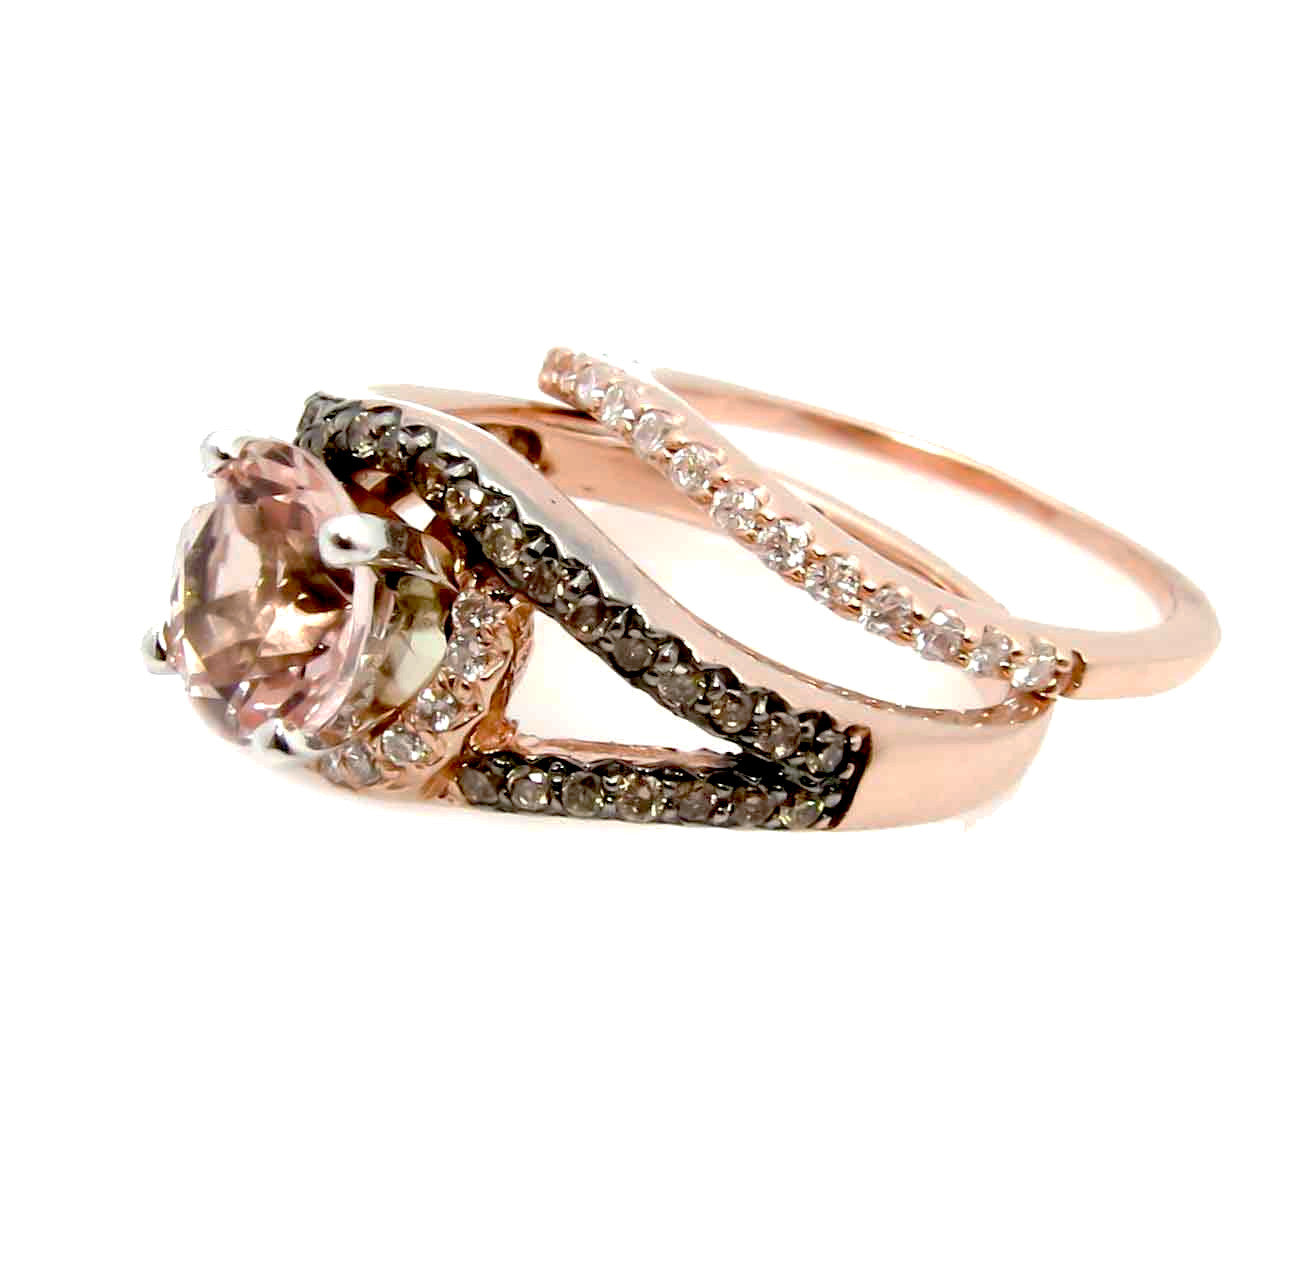 Unique 1 Carat Morganite Floating Halo Rose Gold Engagement Ring With .27 Carat White & Brown Diamonds, Split Shank - MG94648ER